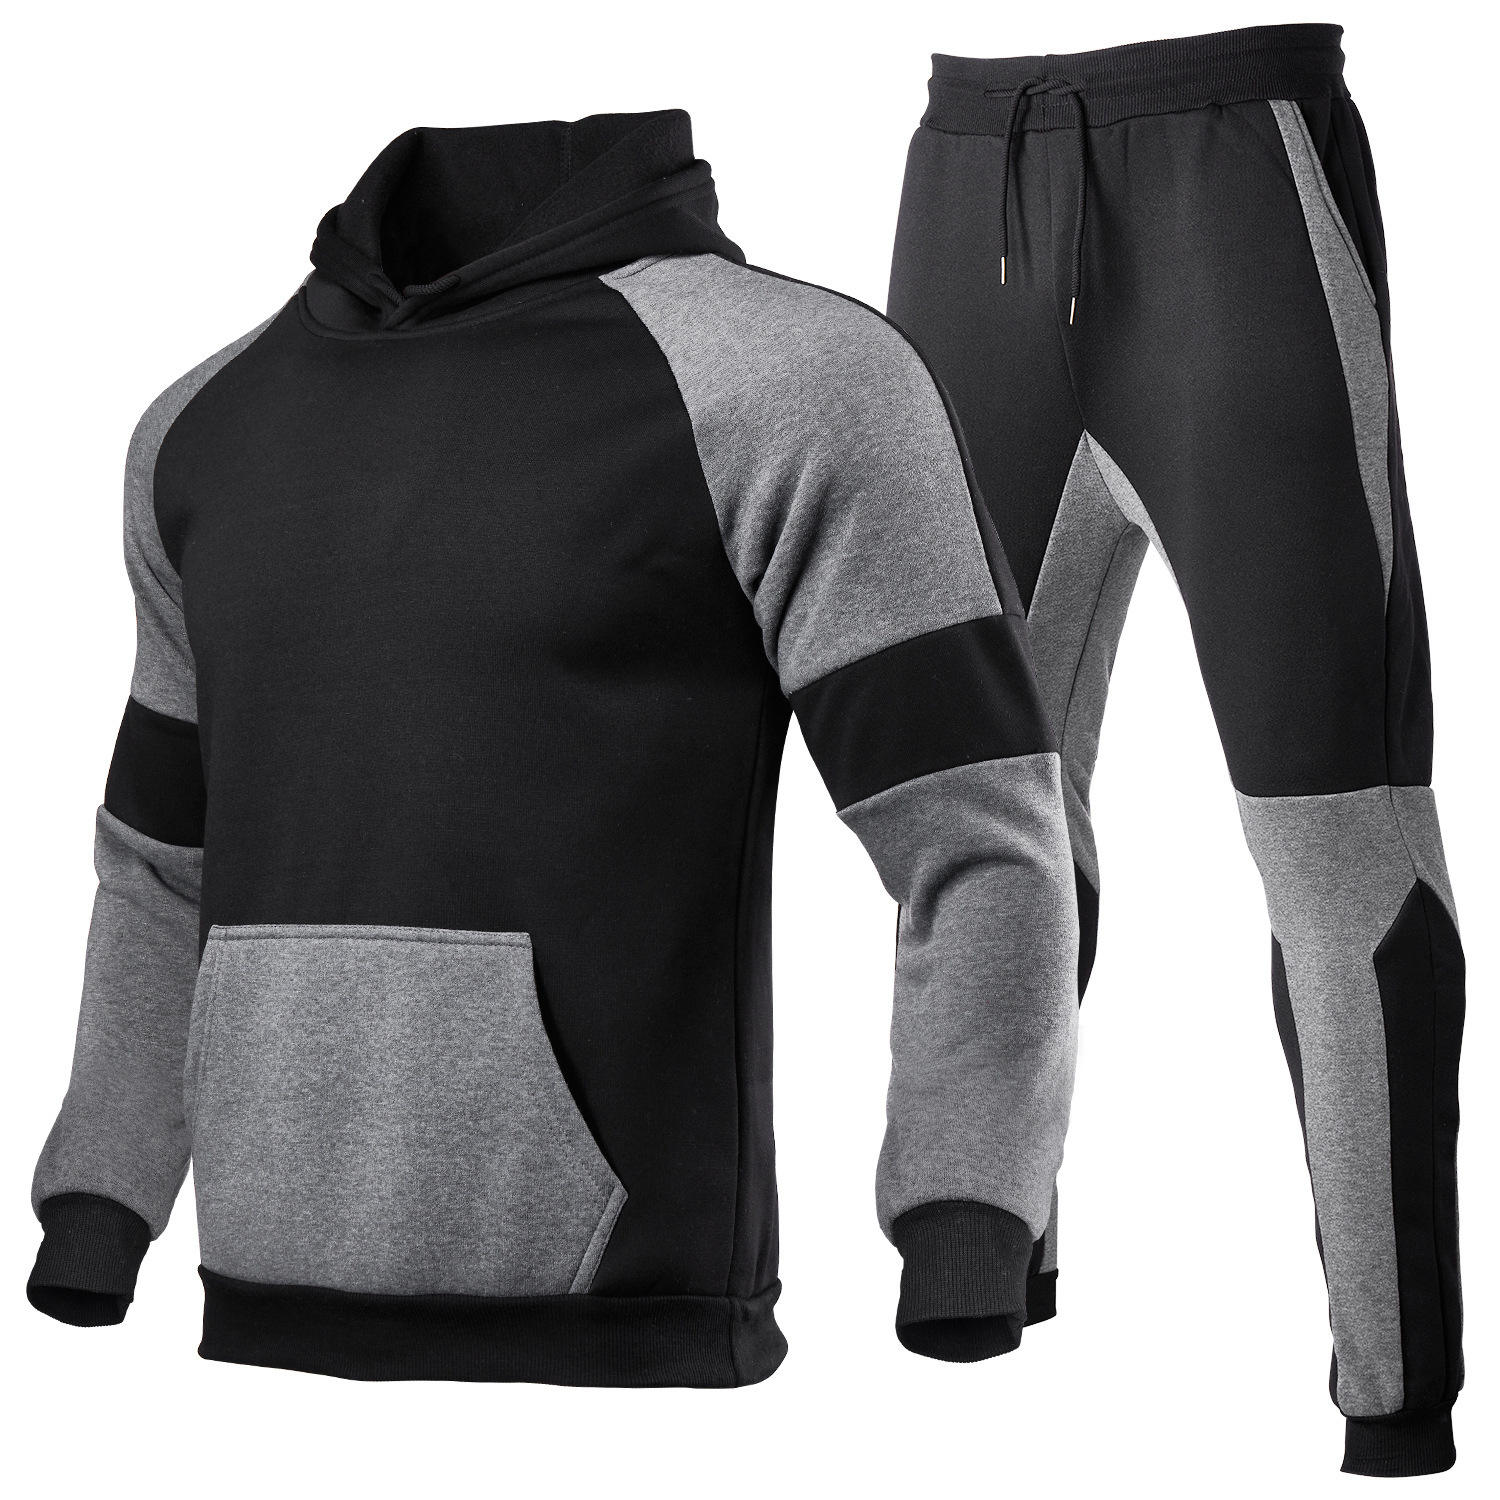 2021 new style adult track suits high quality men track suits private label training sportswear